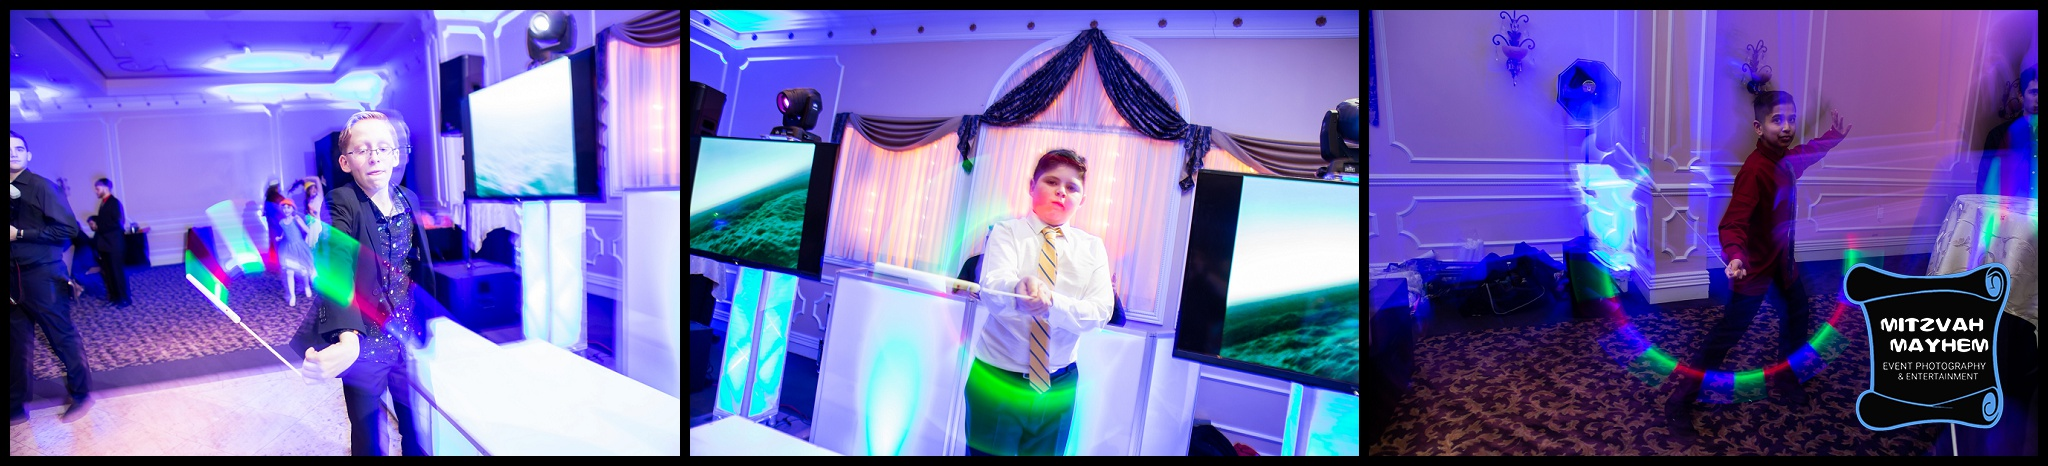 nj-mitzvah-photographer-jacques-caterers-3.JPG